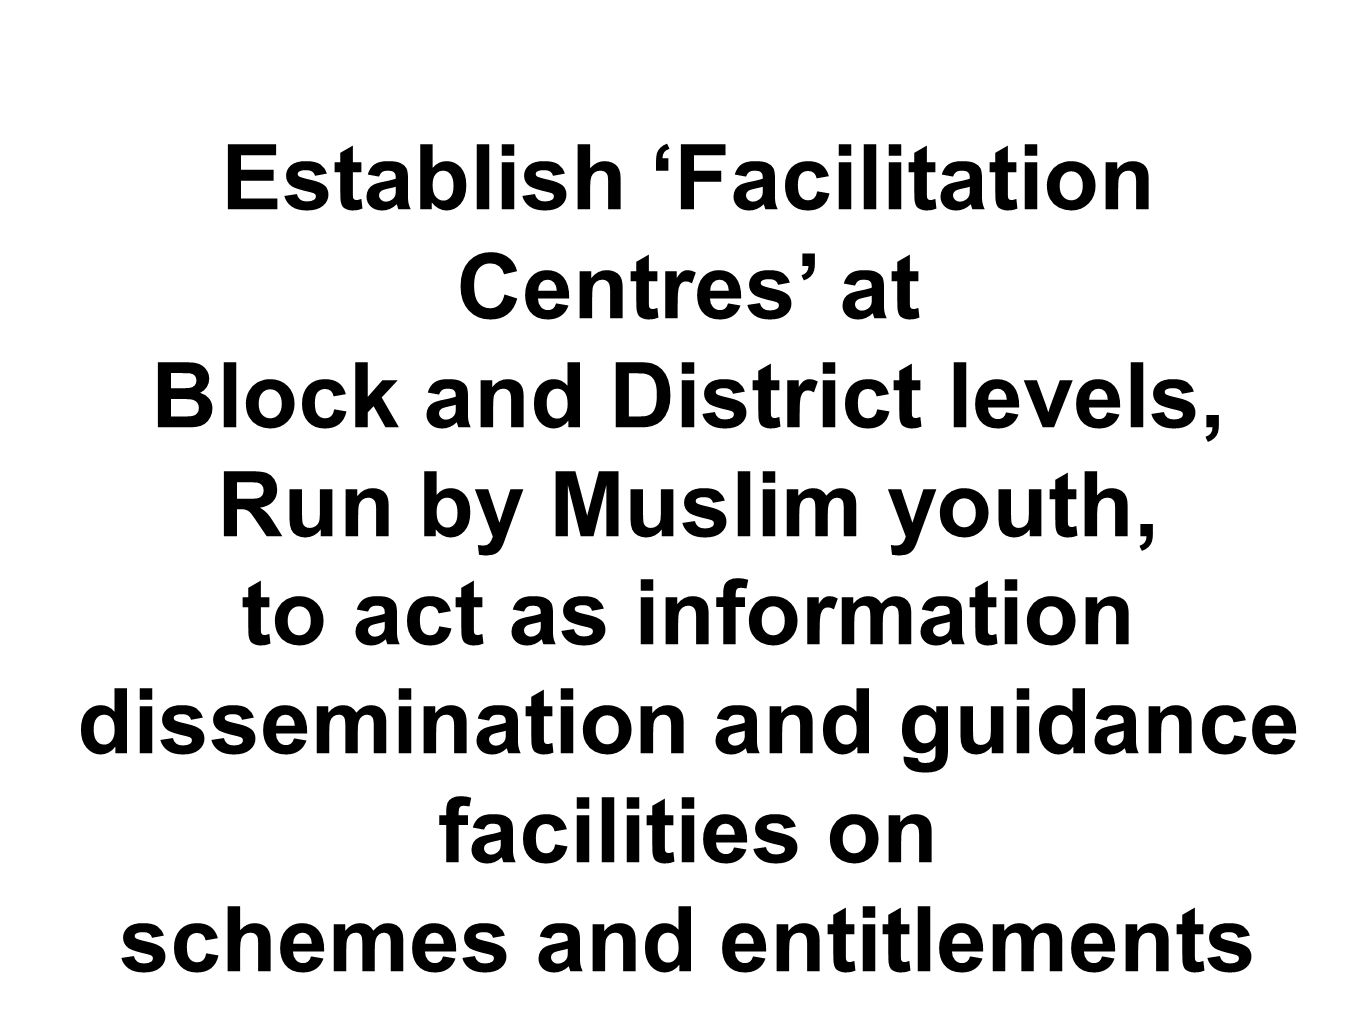 Establish 'Facilitation Centres' at Block and District levels, Run by Muslim youth, to act as information dissemination and guidance facilities on sch